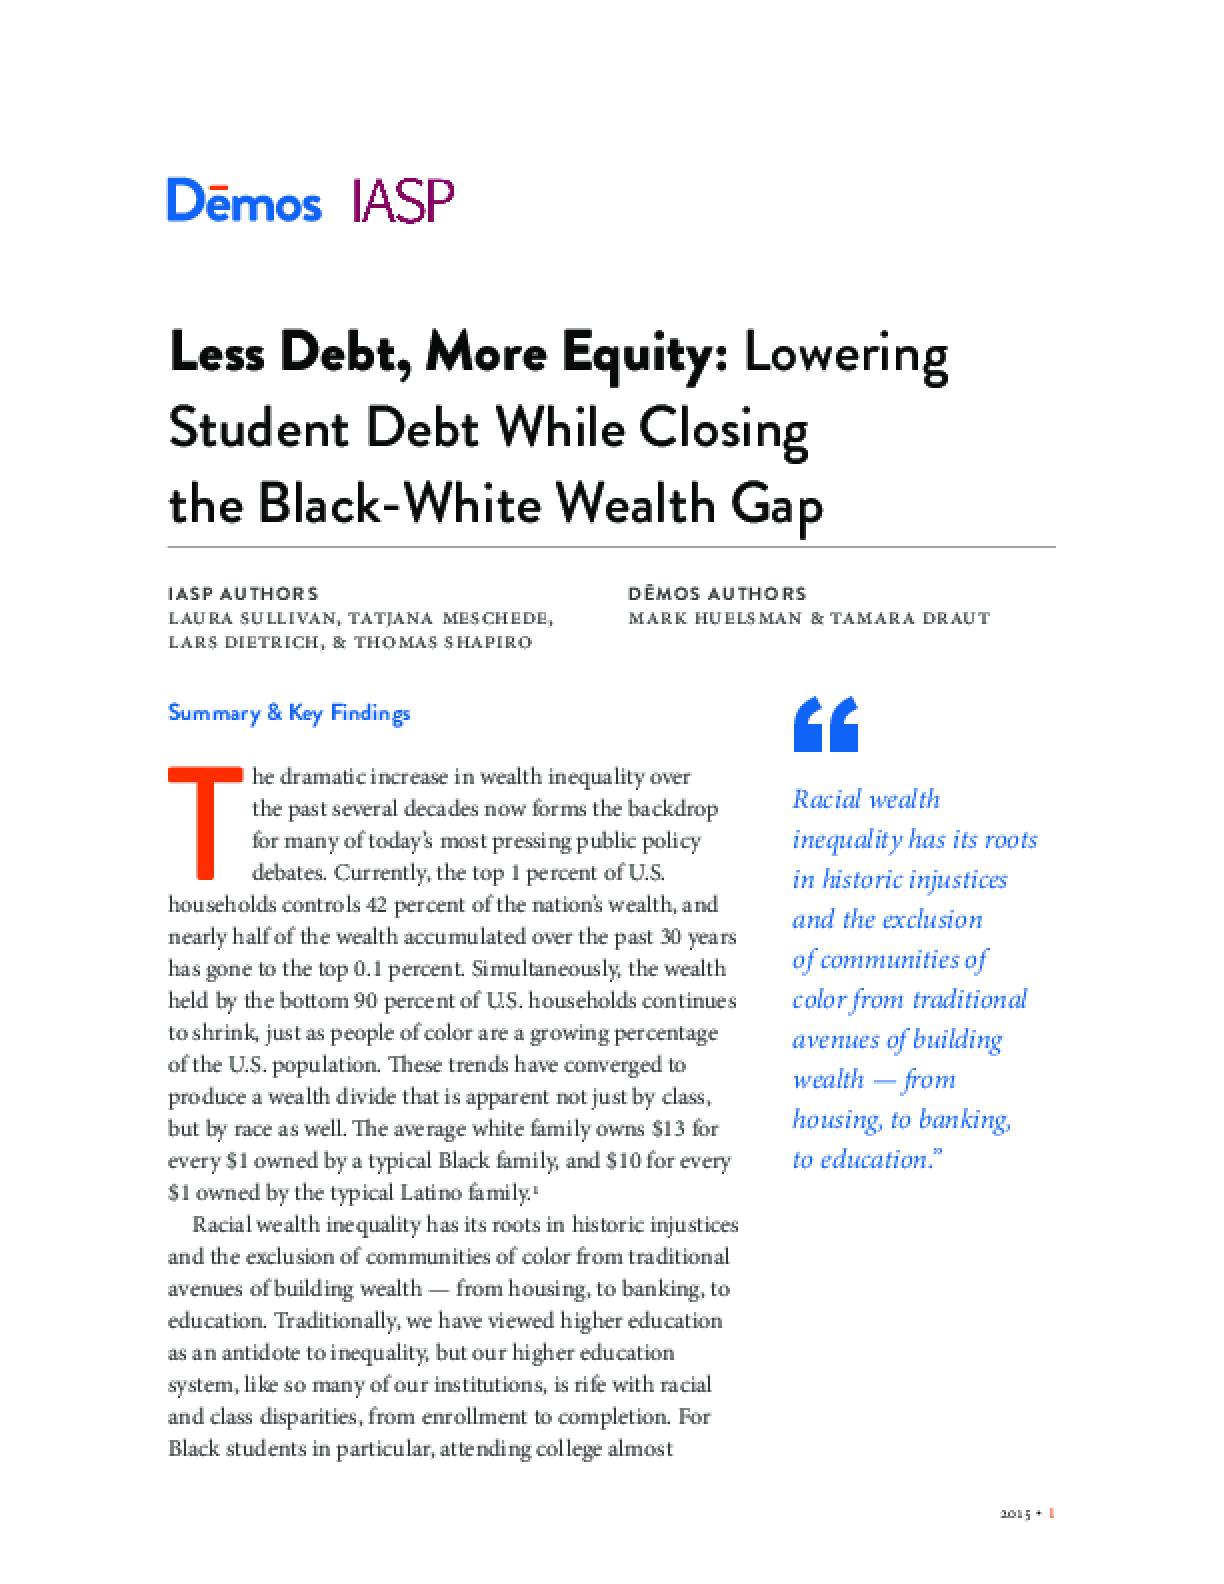 Less Debt, More Equity: Lowering Student Debt While Closing the Black-White Wealth Gap